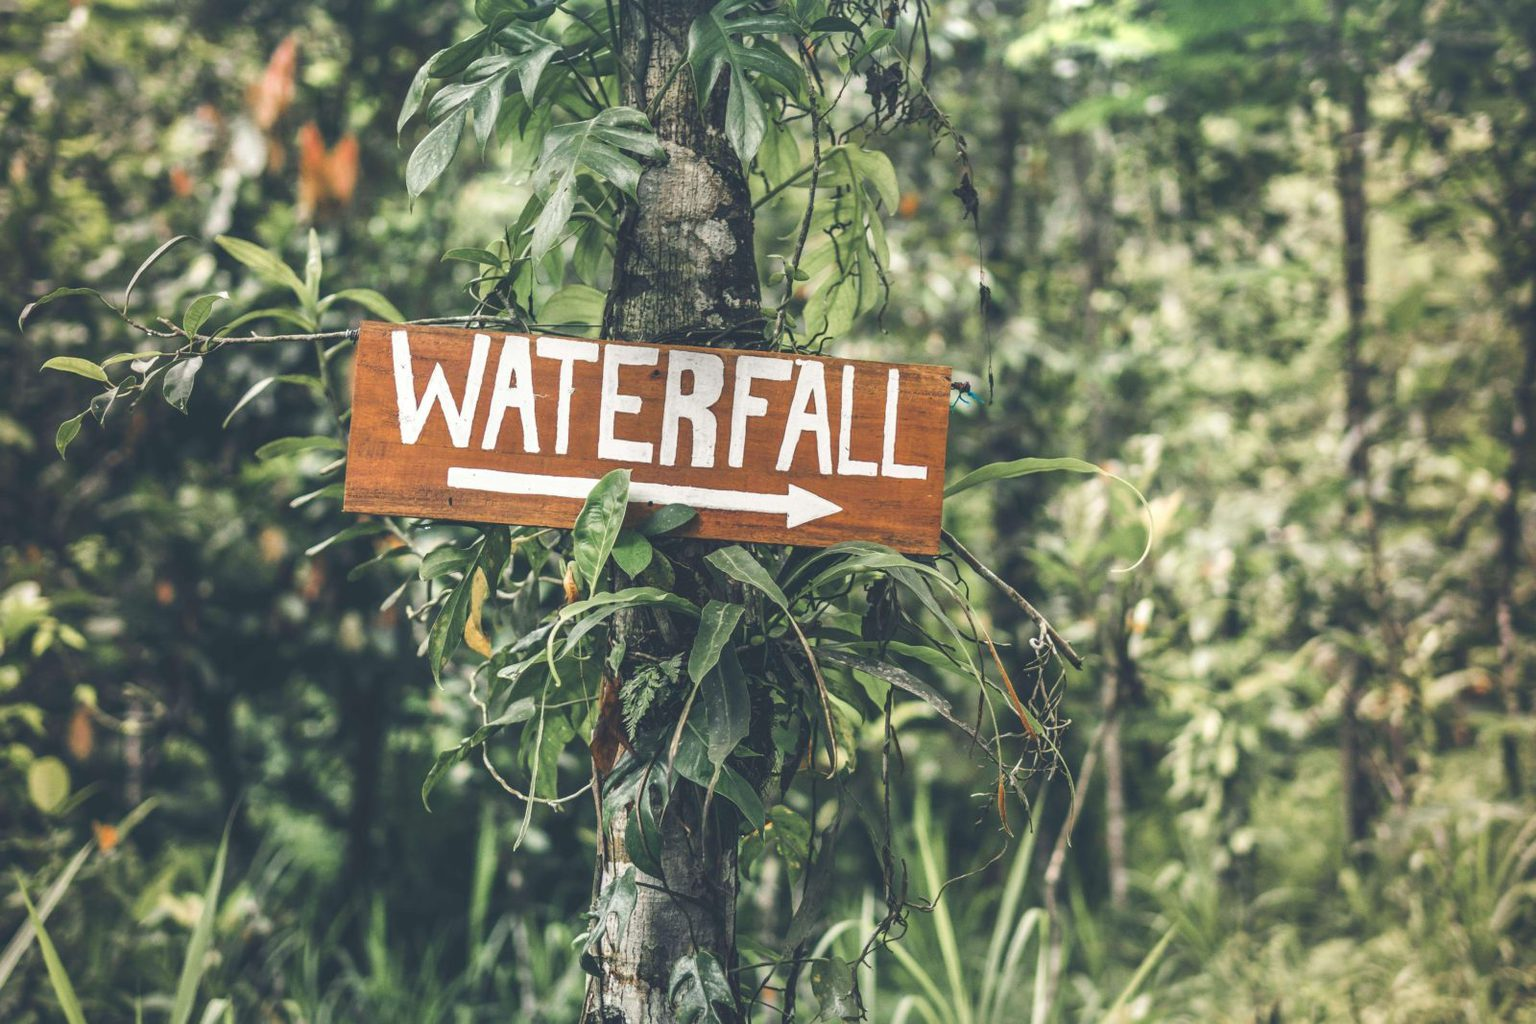 Melanting waterfall sign